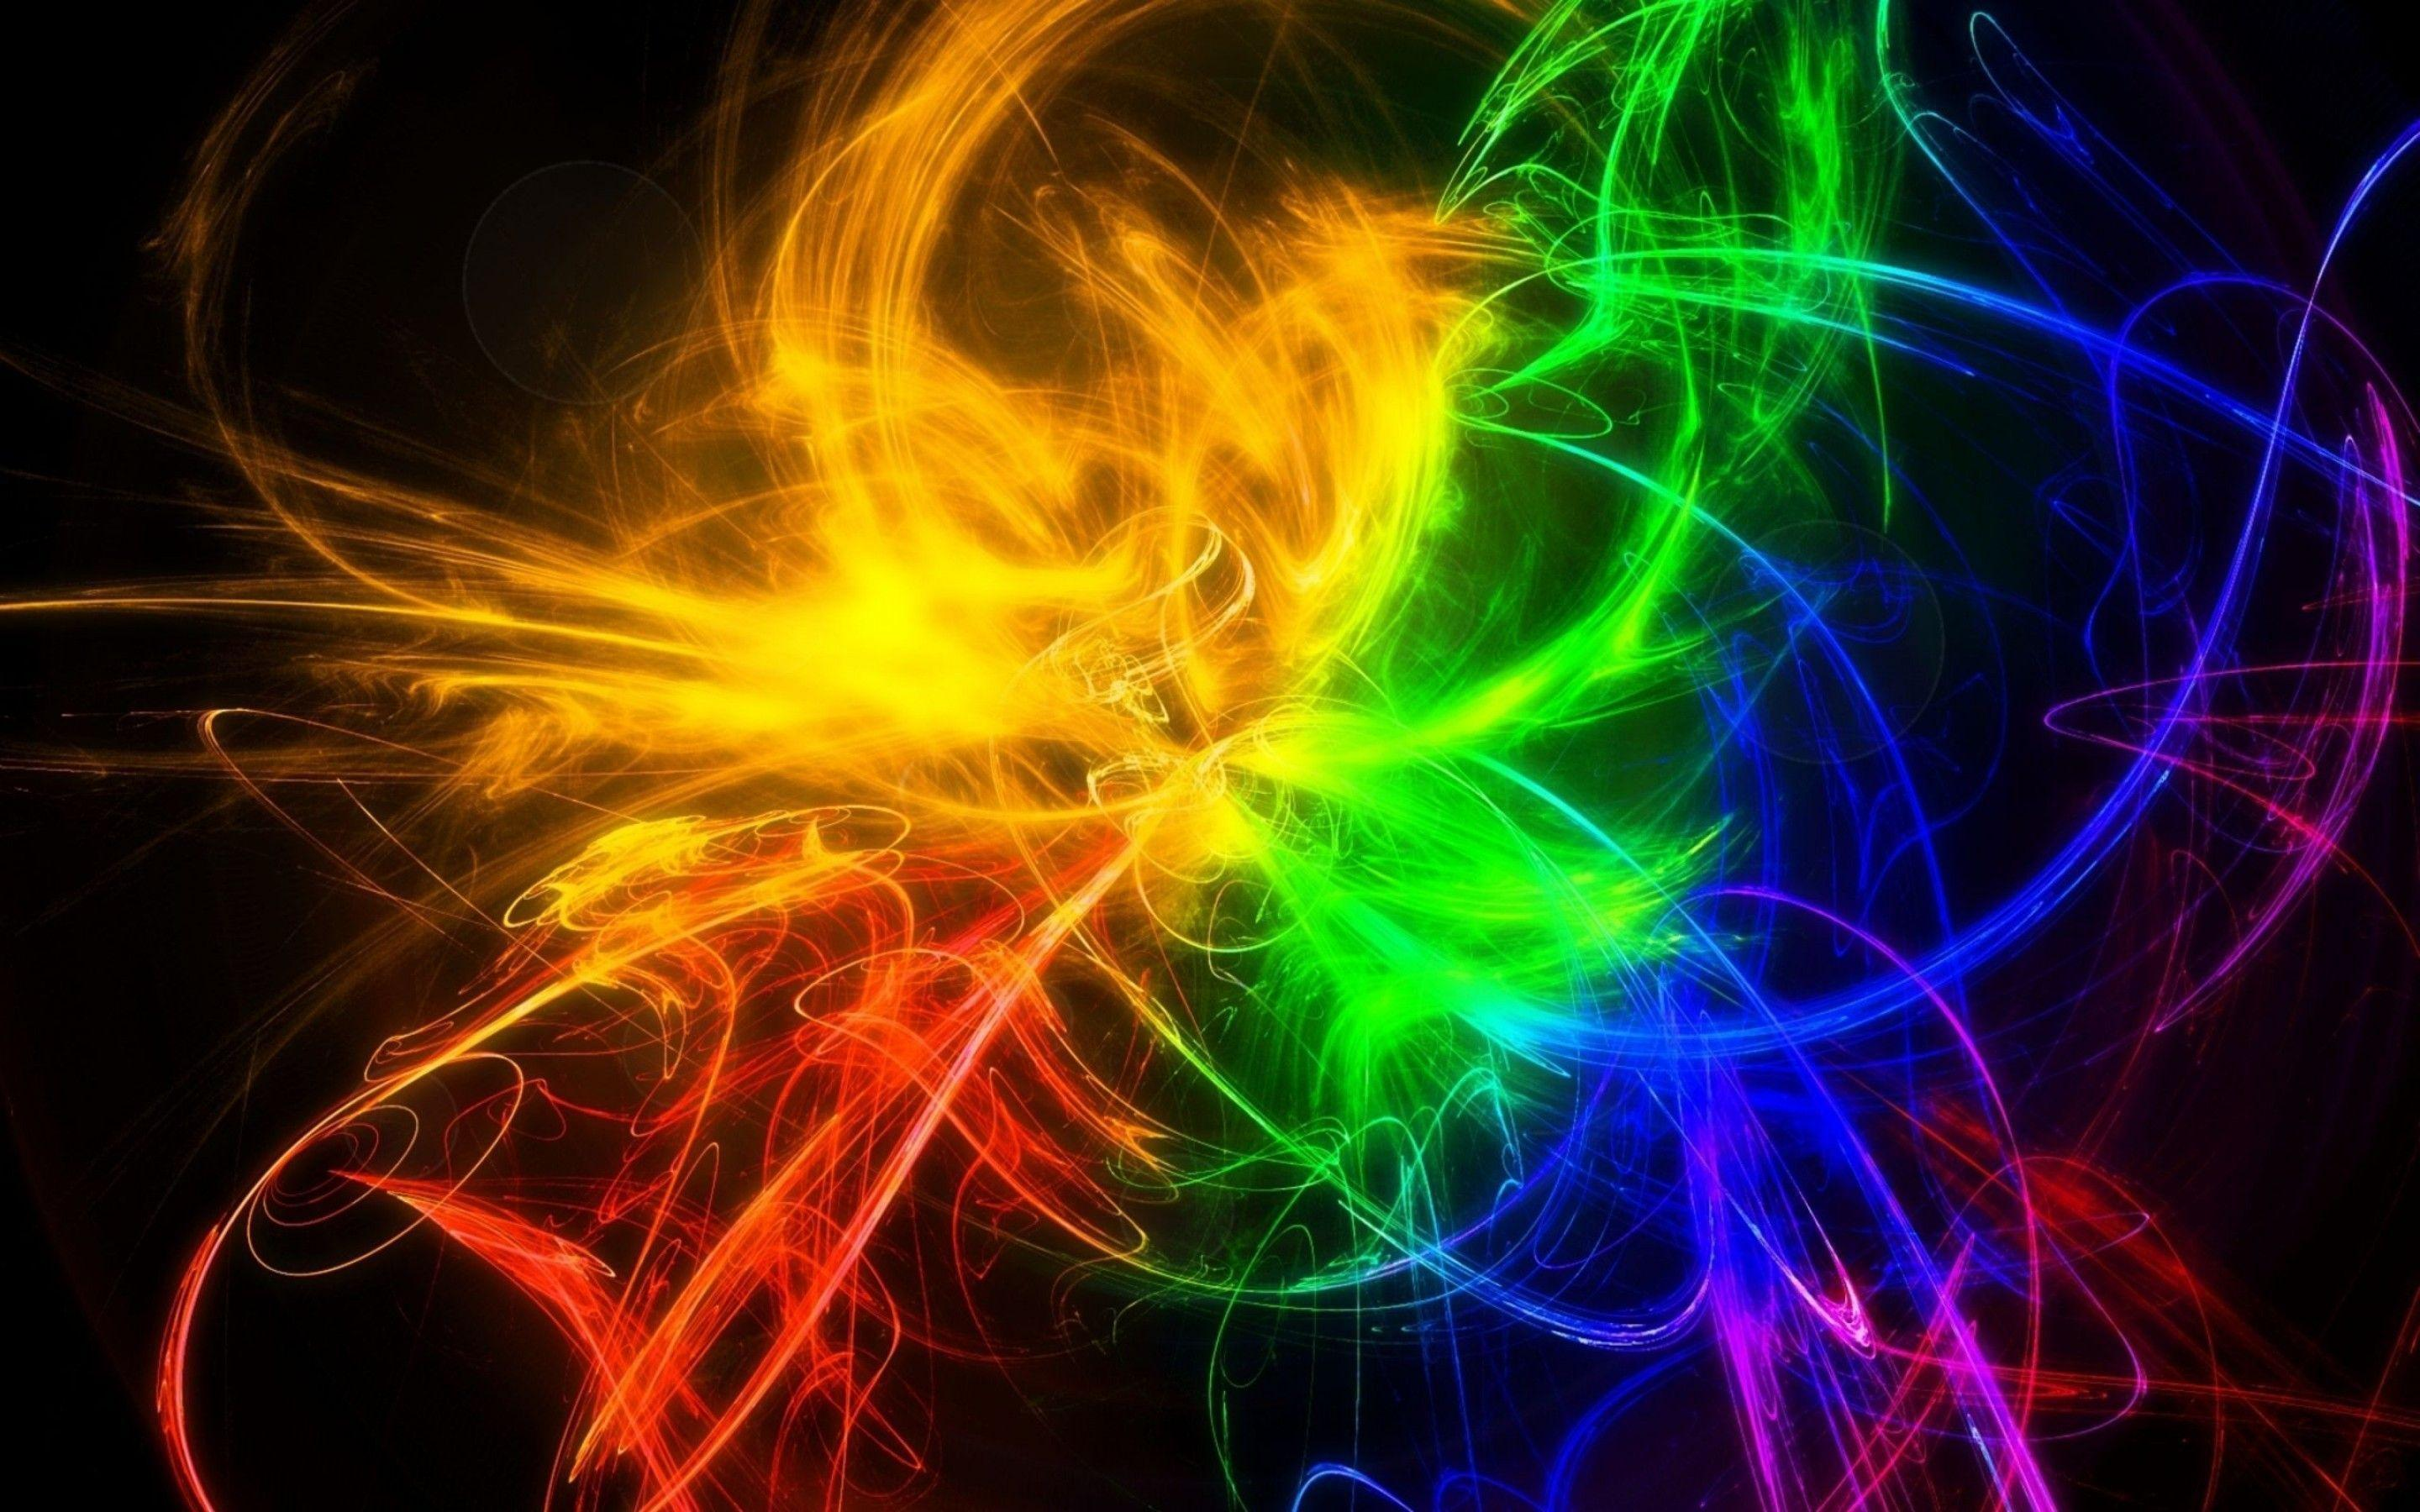 Colored Smoke Backgrounds 2880x1800